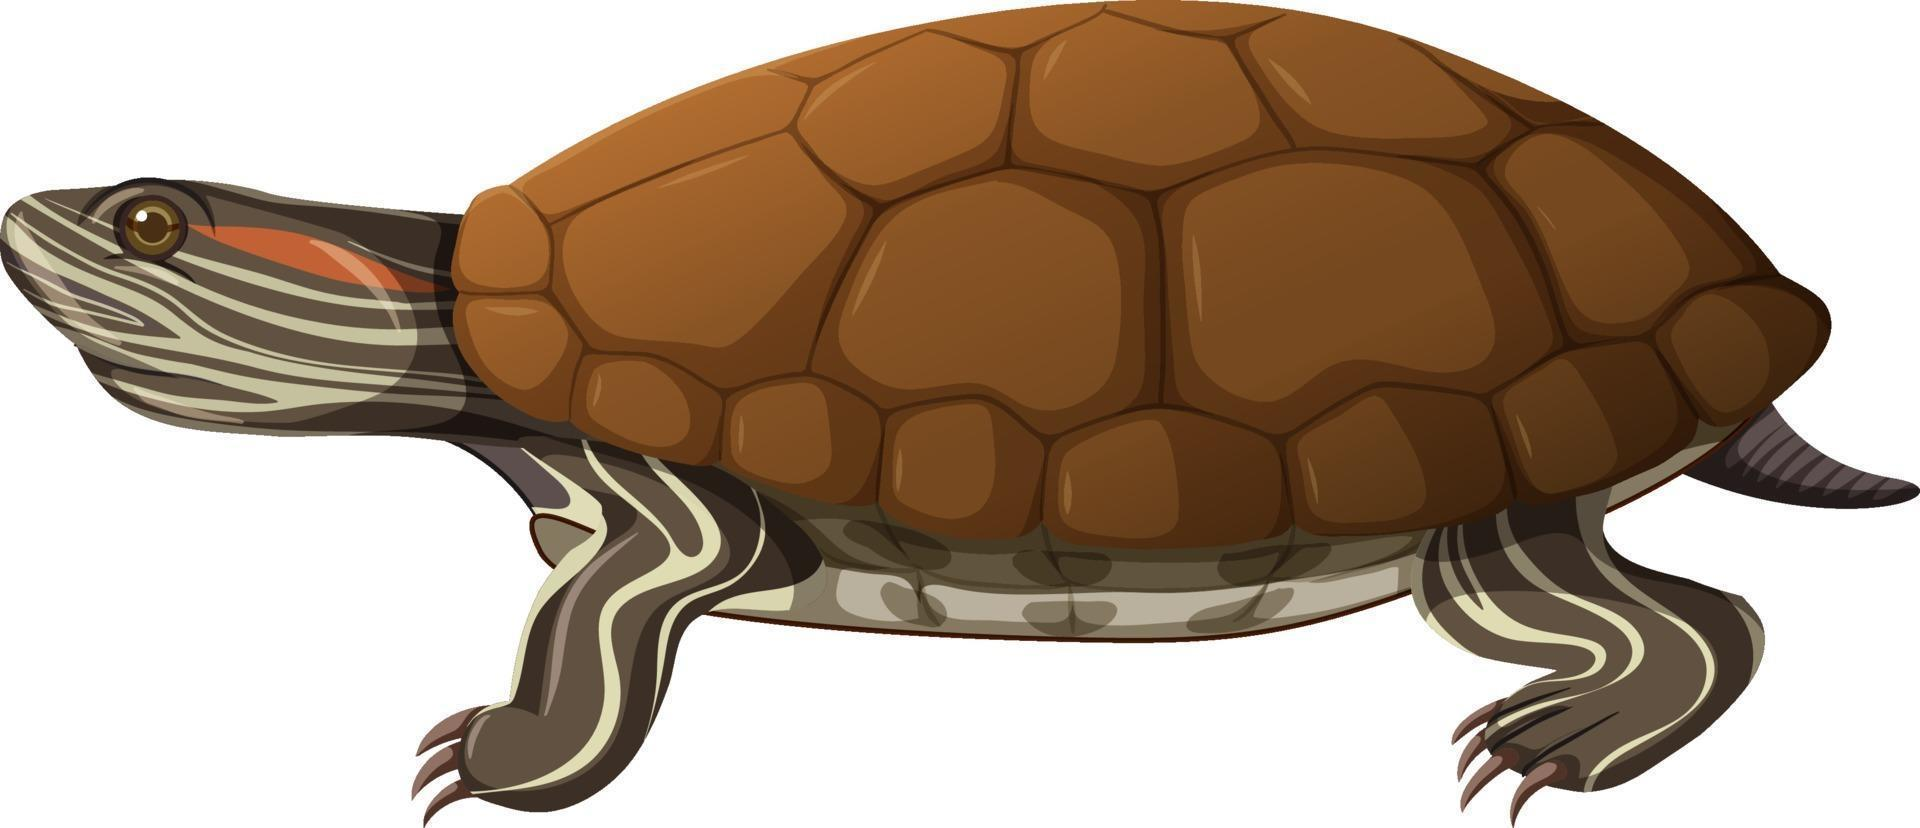 Turtle in cartoon style isolated on white background vector